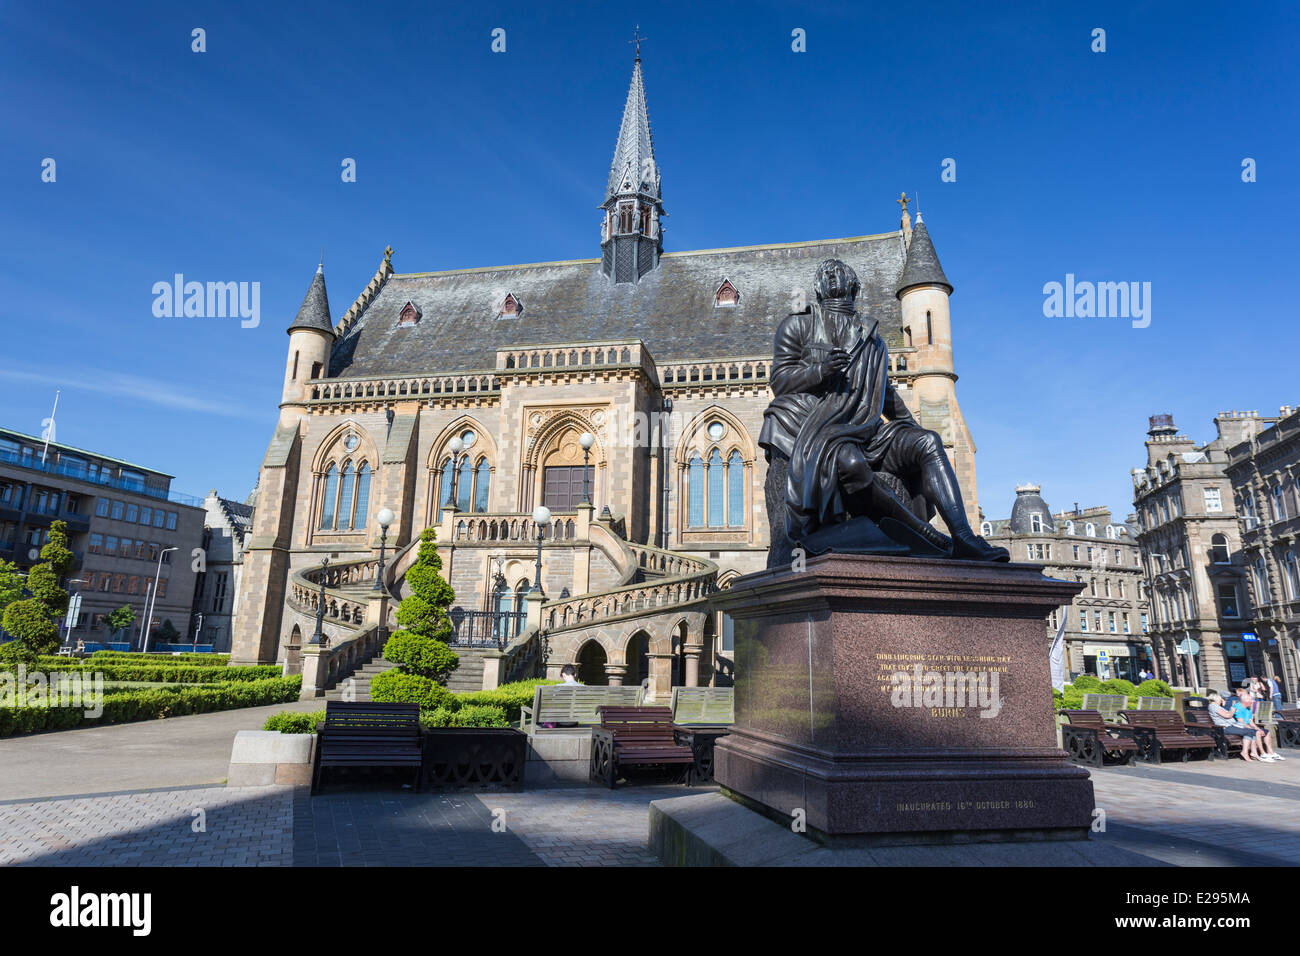 The McManus Art Gallery Museum Dundee Tayside Scotland with Statue of Robert Burns - Stock Image